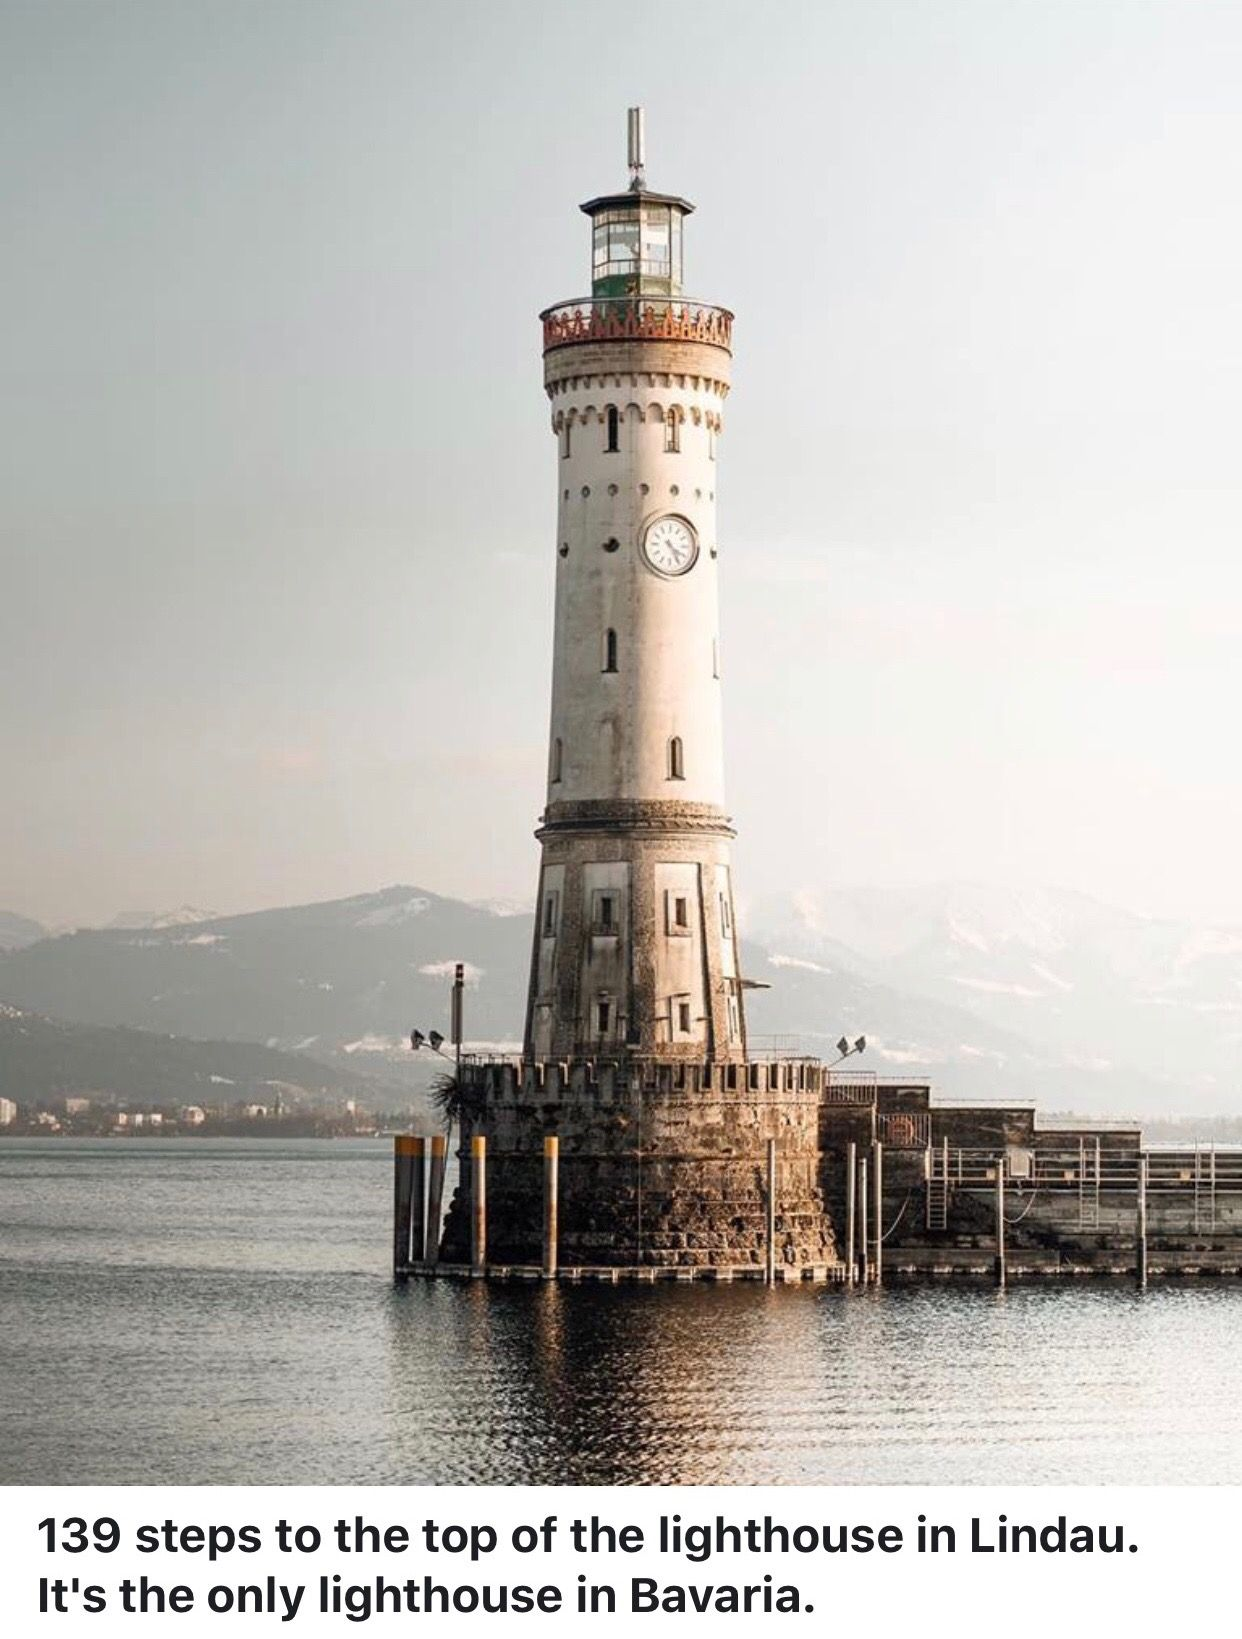 Pin by hgardner on my favored places lindau lighthouse